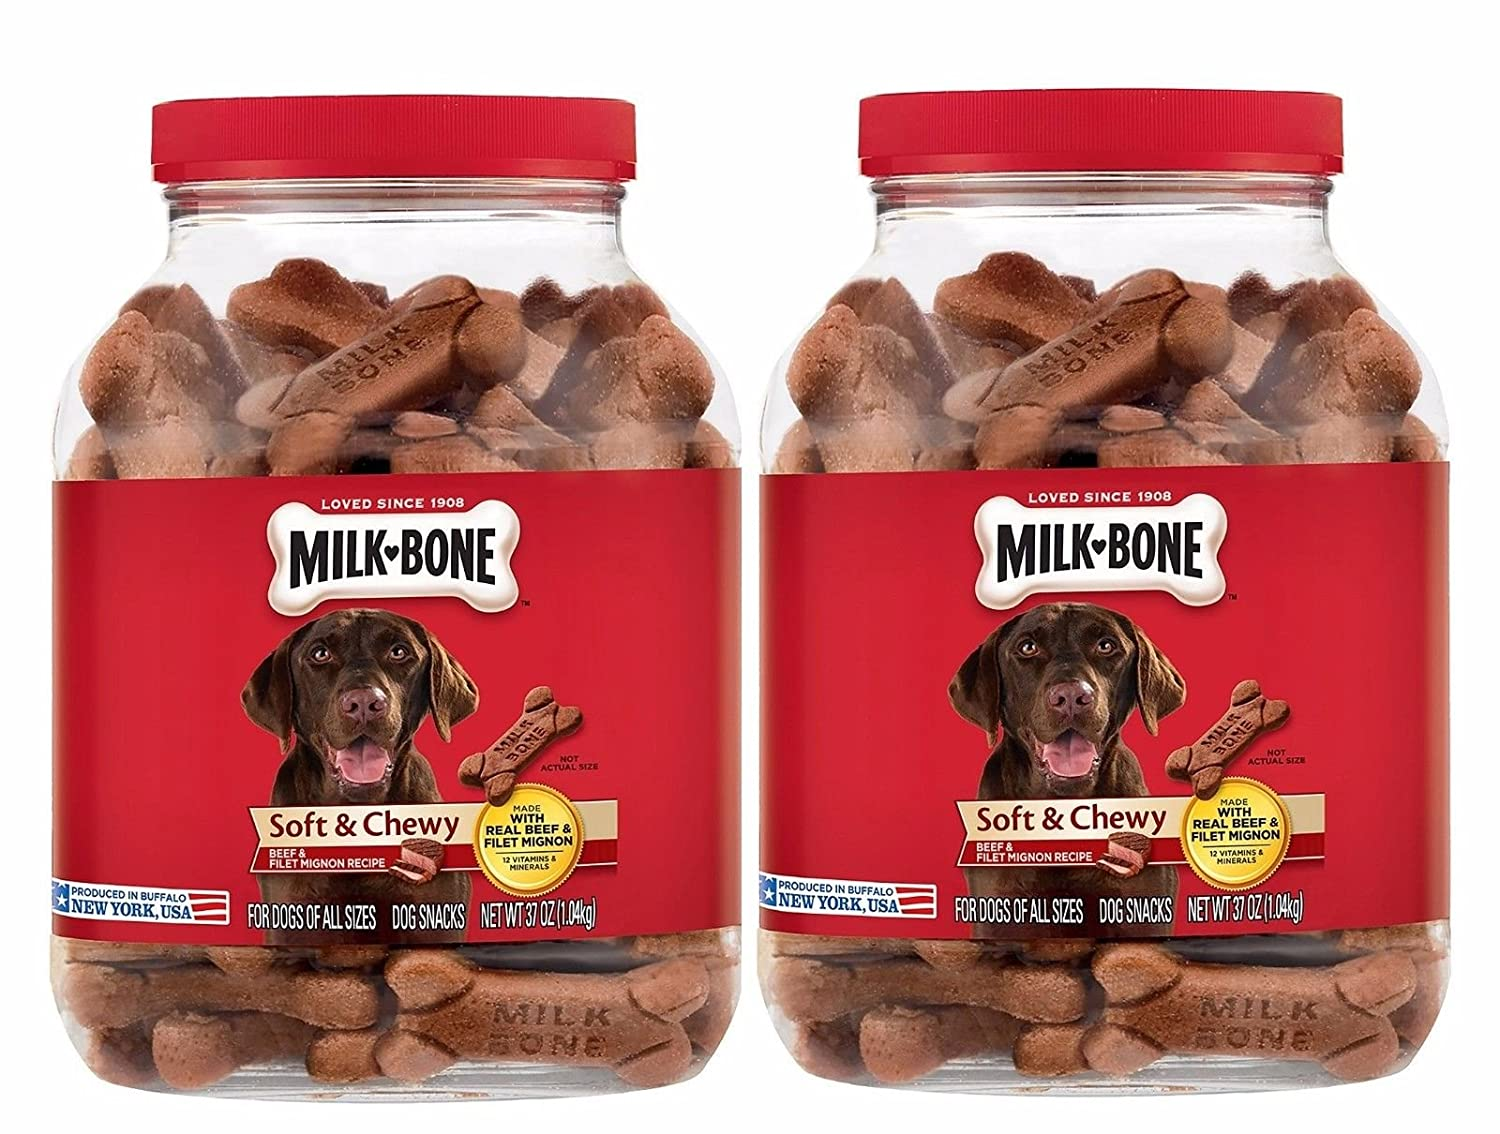 2 PACK Milk-Bone Soft & Chewy Beef & Filet Mignon Recipe Dog Treats, 25-Ounce